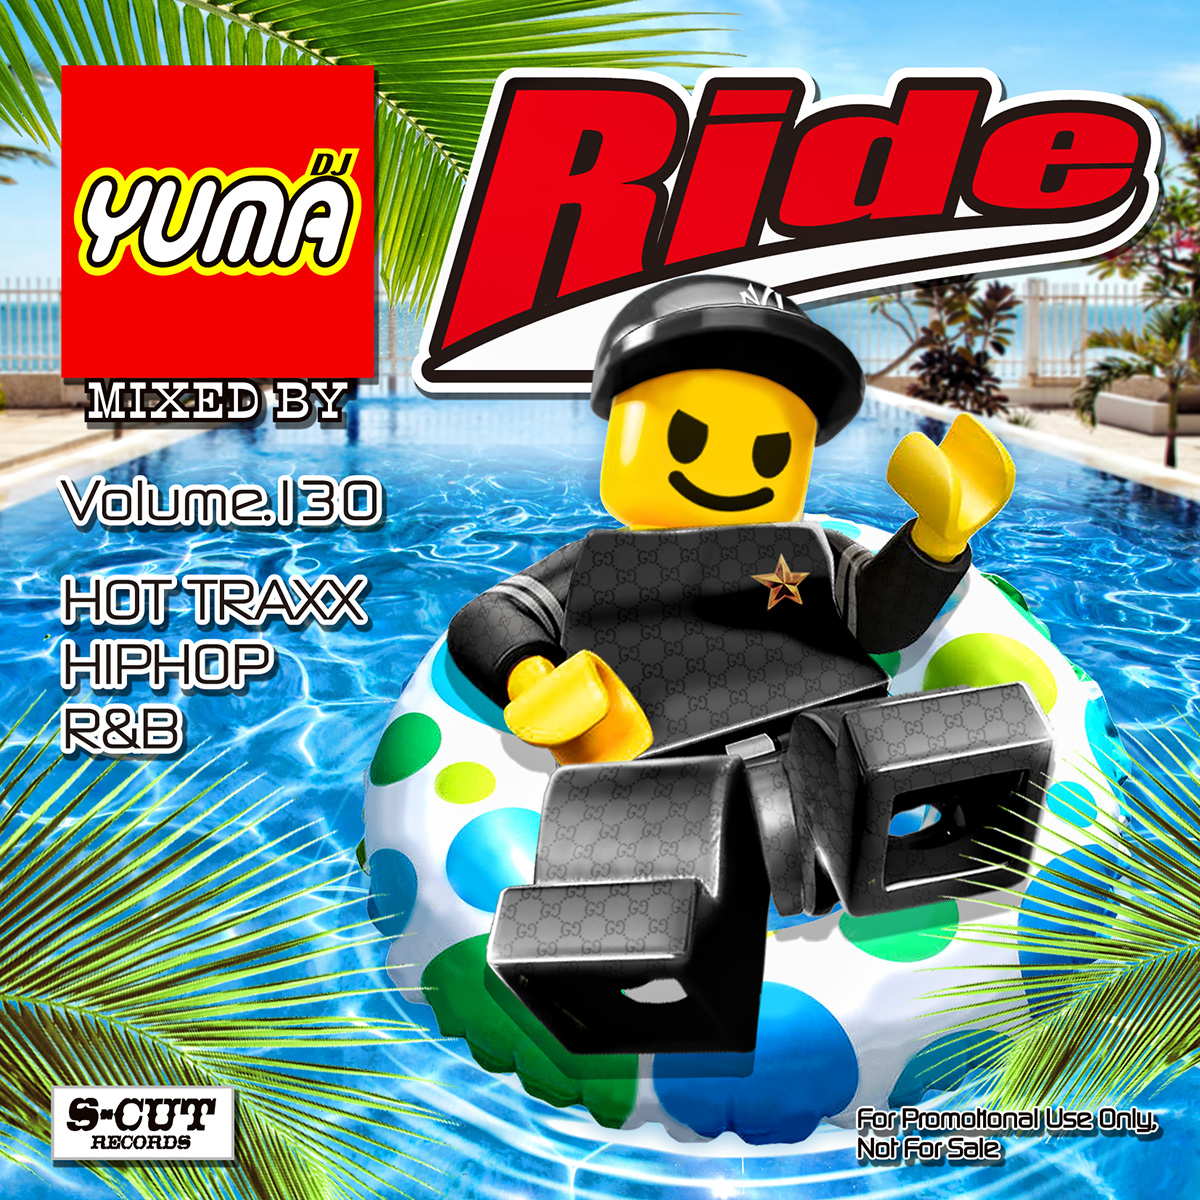 【1枚組】 Ride Vol.130 / DJ Yuma 【[国内盤MIX CD】